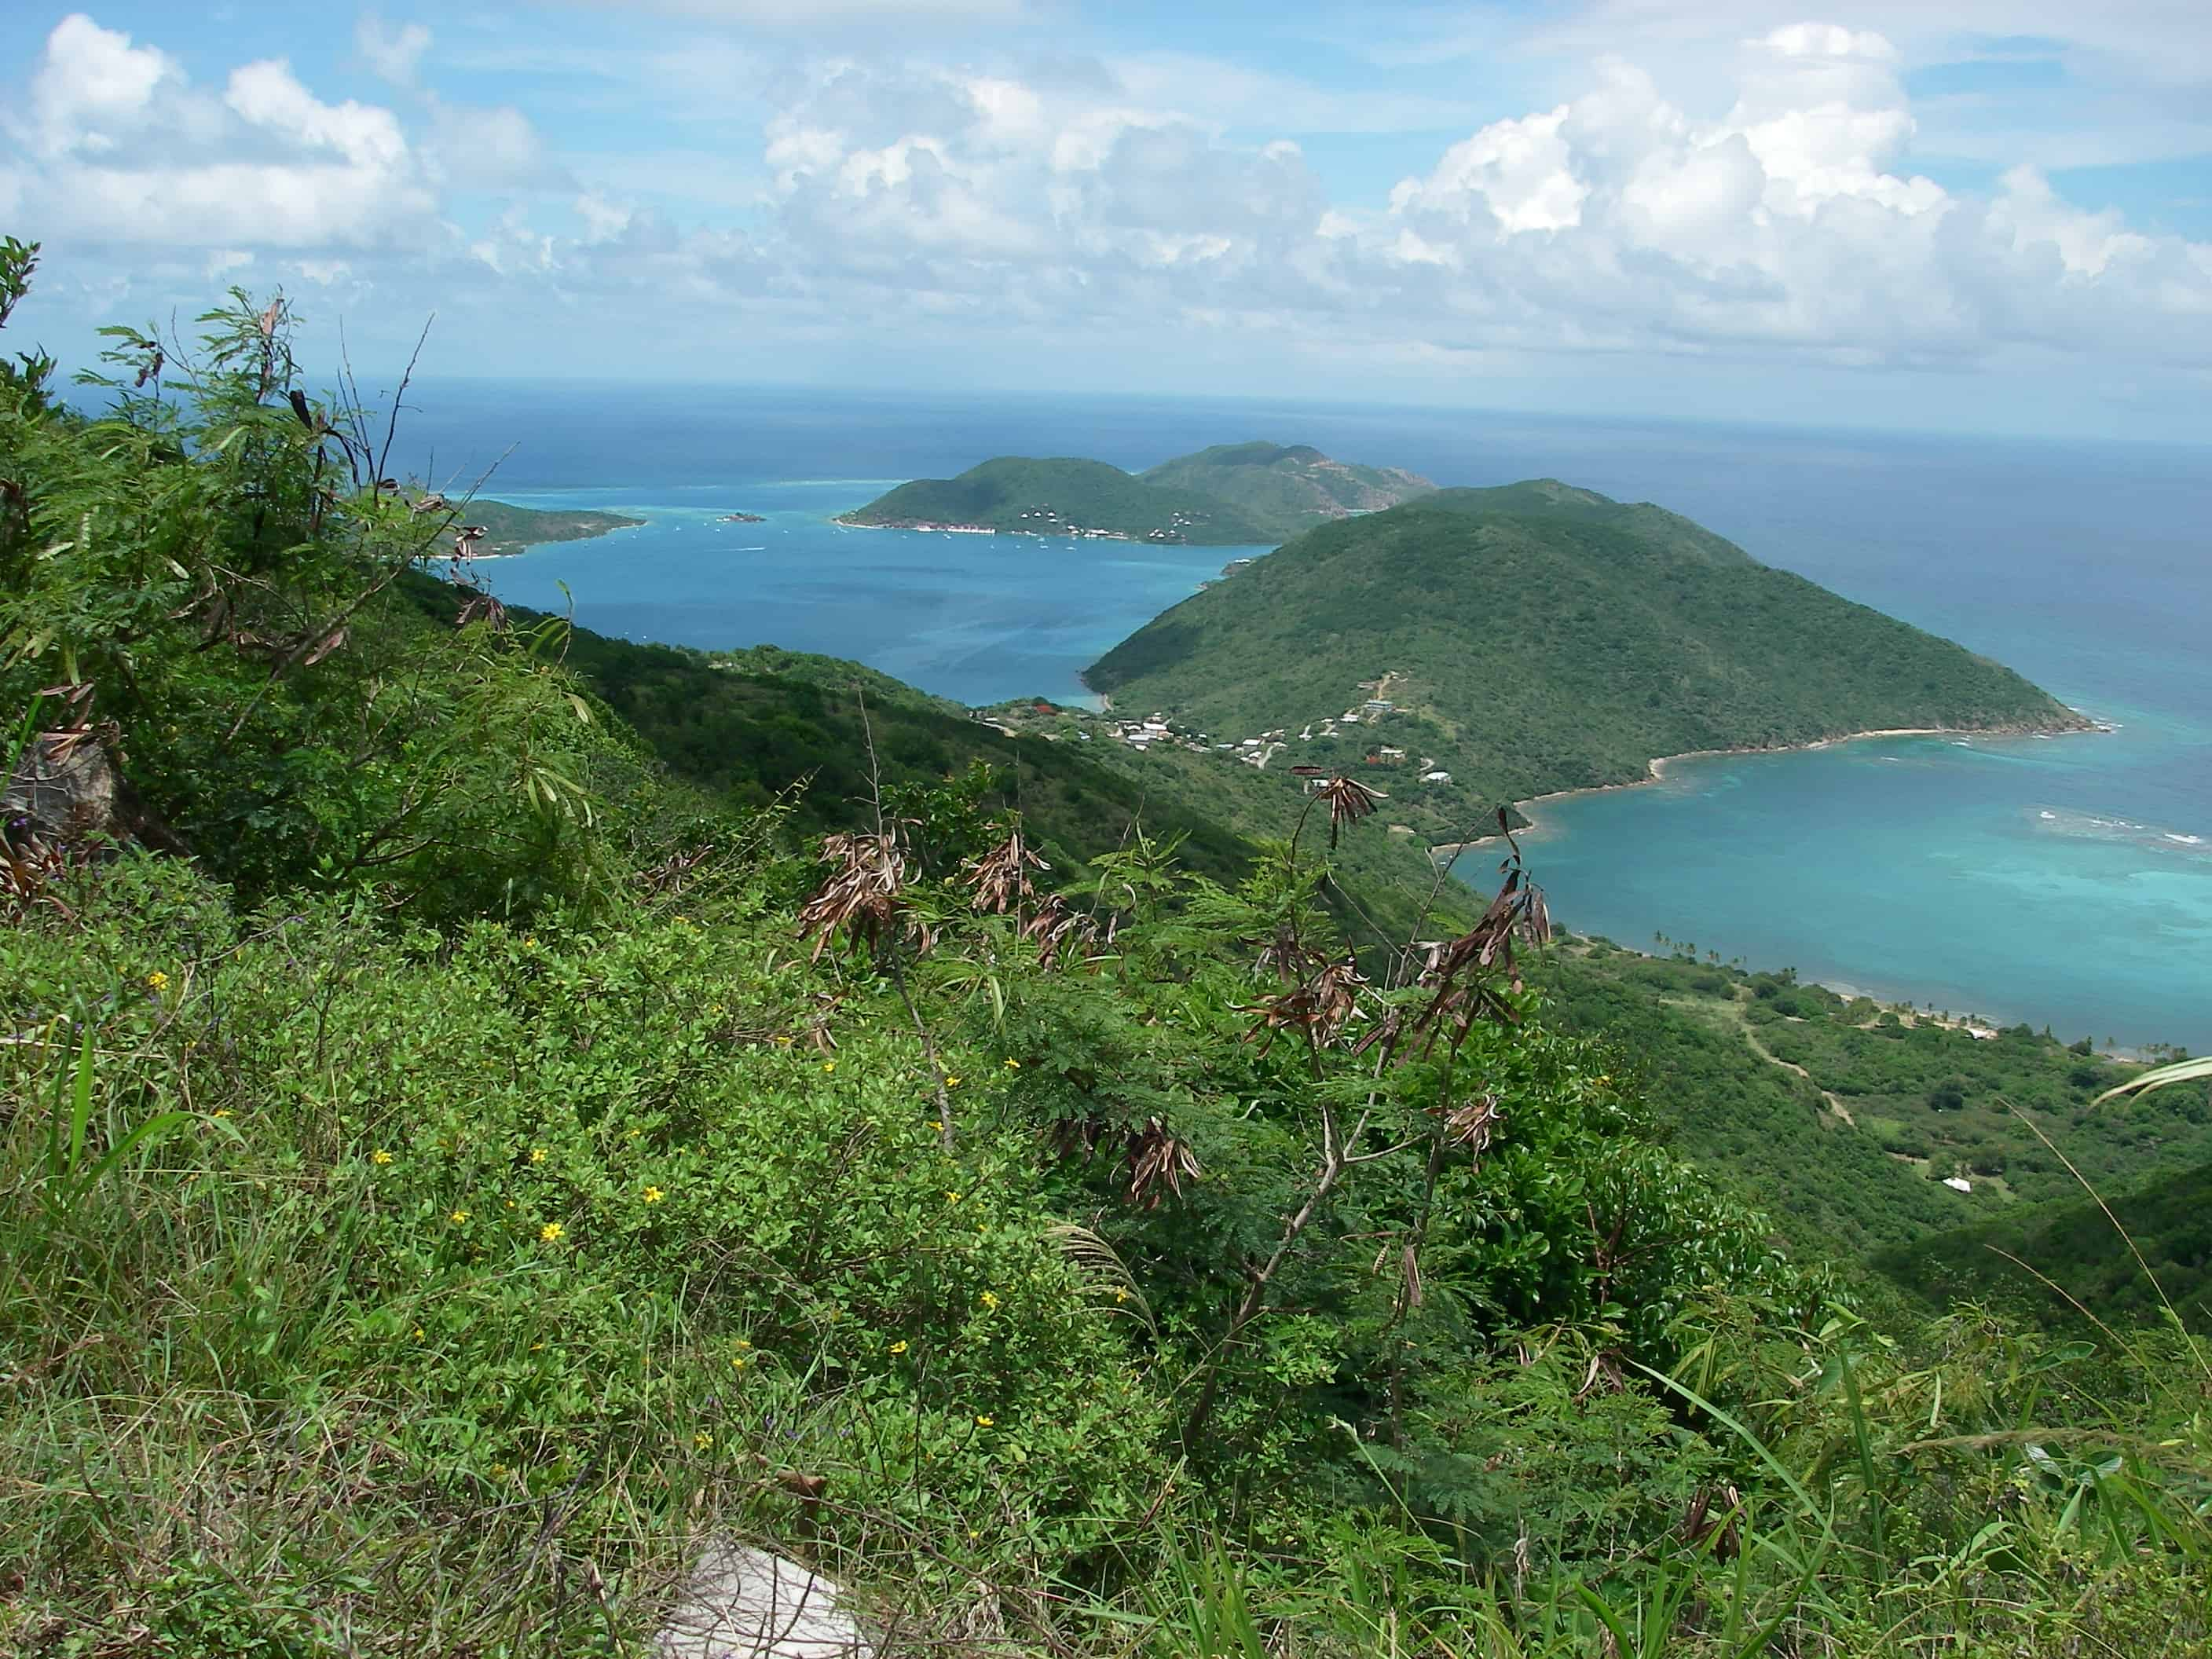 A view of Tortola from Sage Mountain National Park. Copyright: Dr Mike Pienkowski